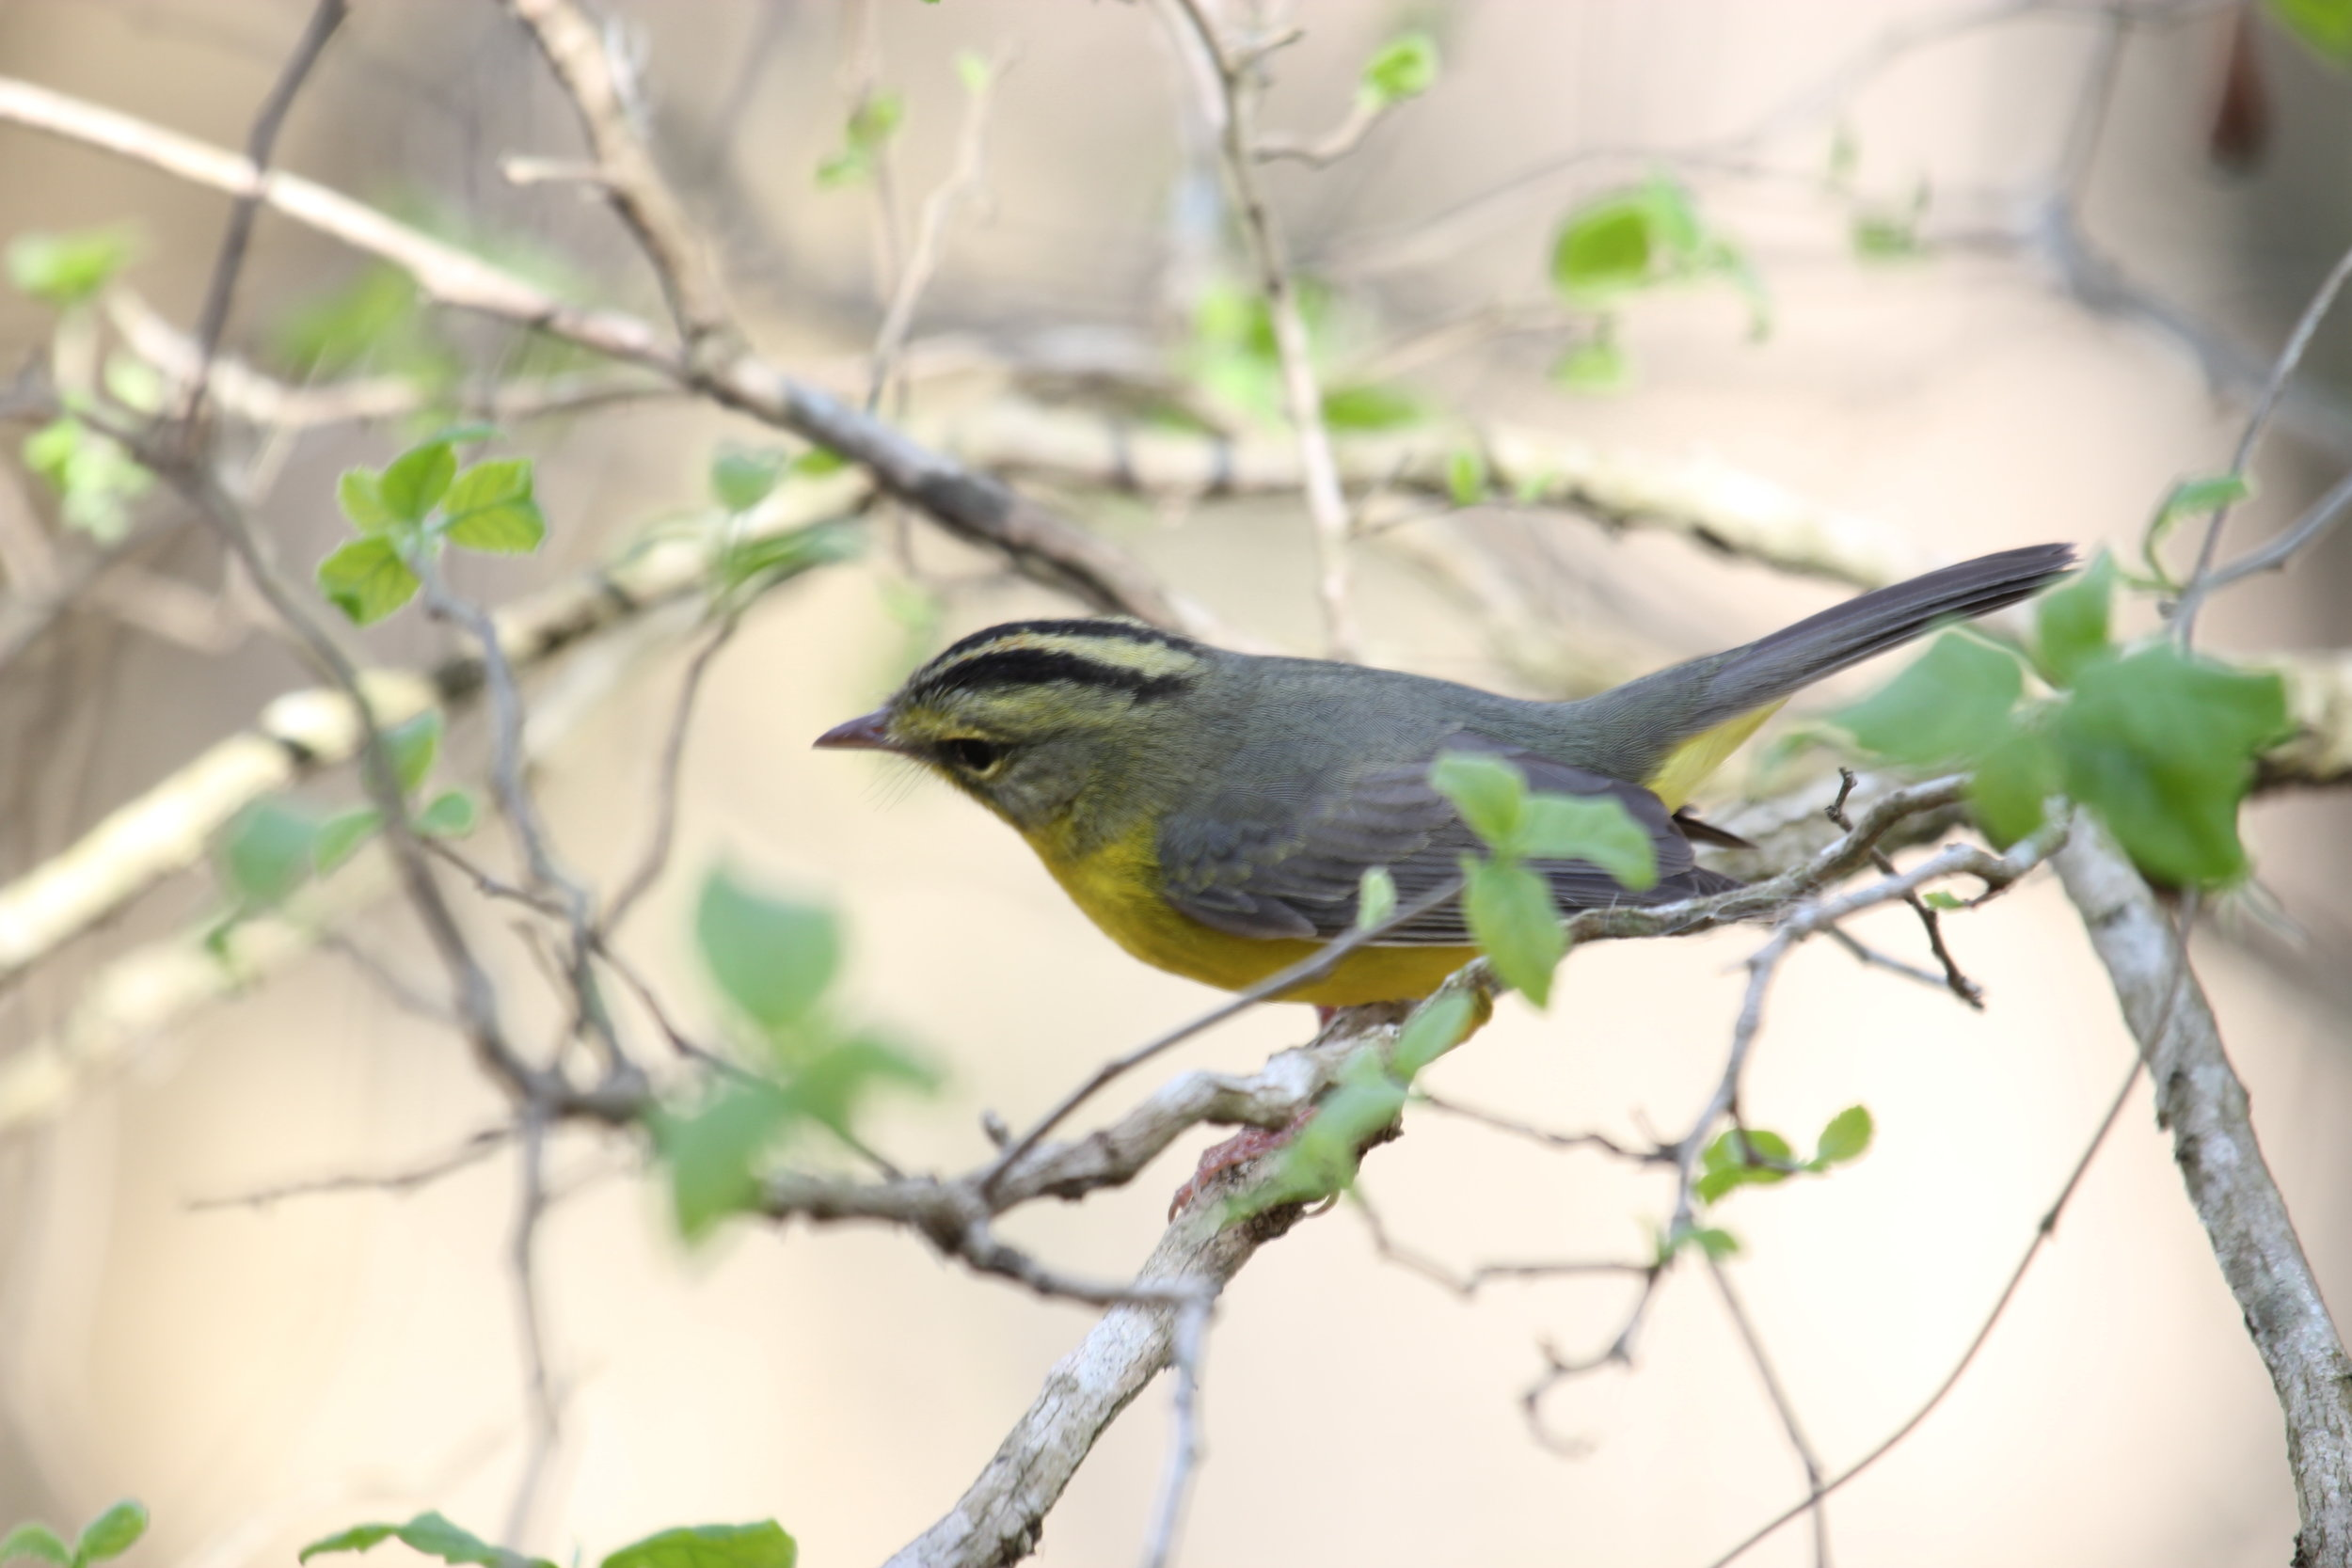 Mary King photographed this Golden-crowned Warbler in Refugio, Lyons/Shelley Park. Not a Christmas Bird Count bird, but a wonderful bird to see and photograph.